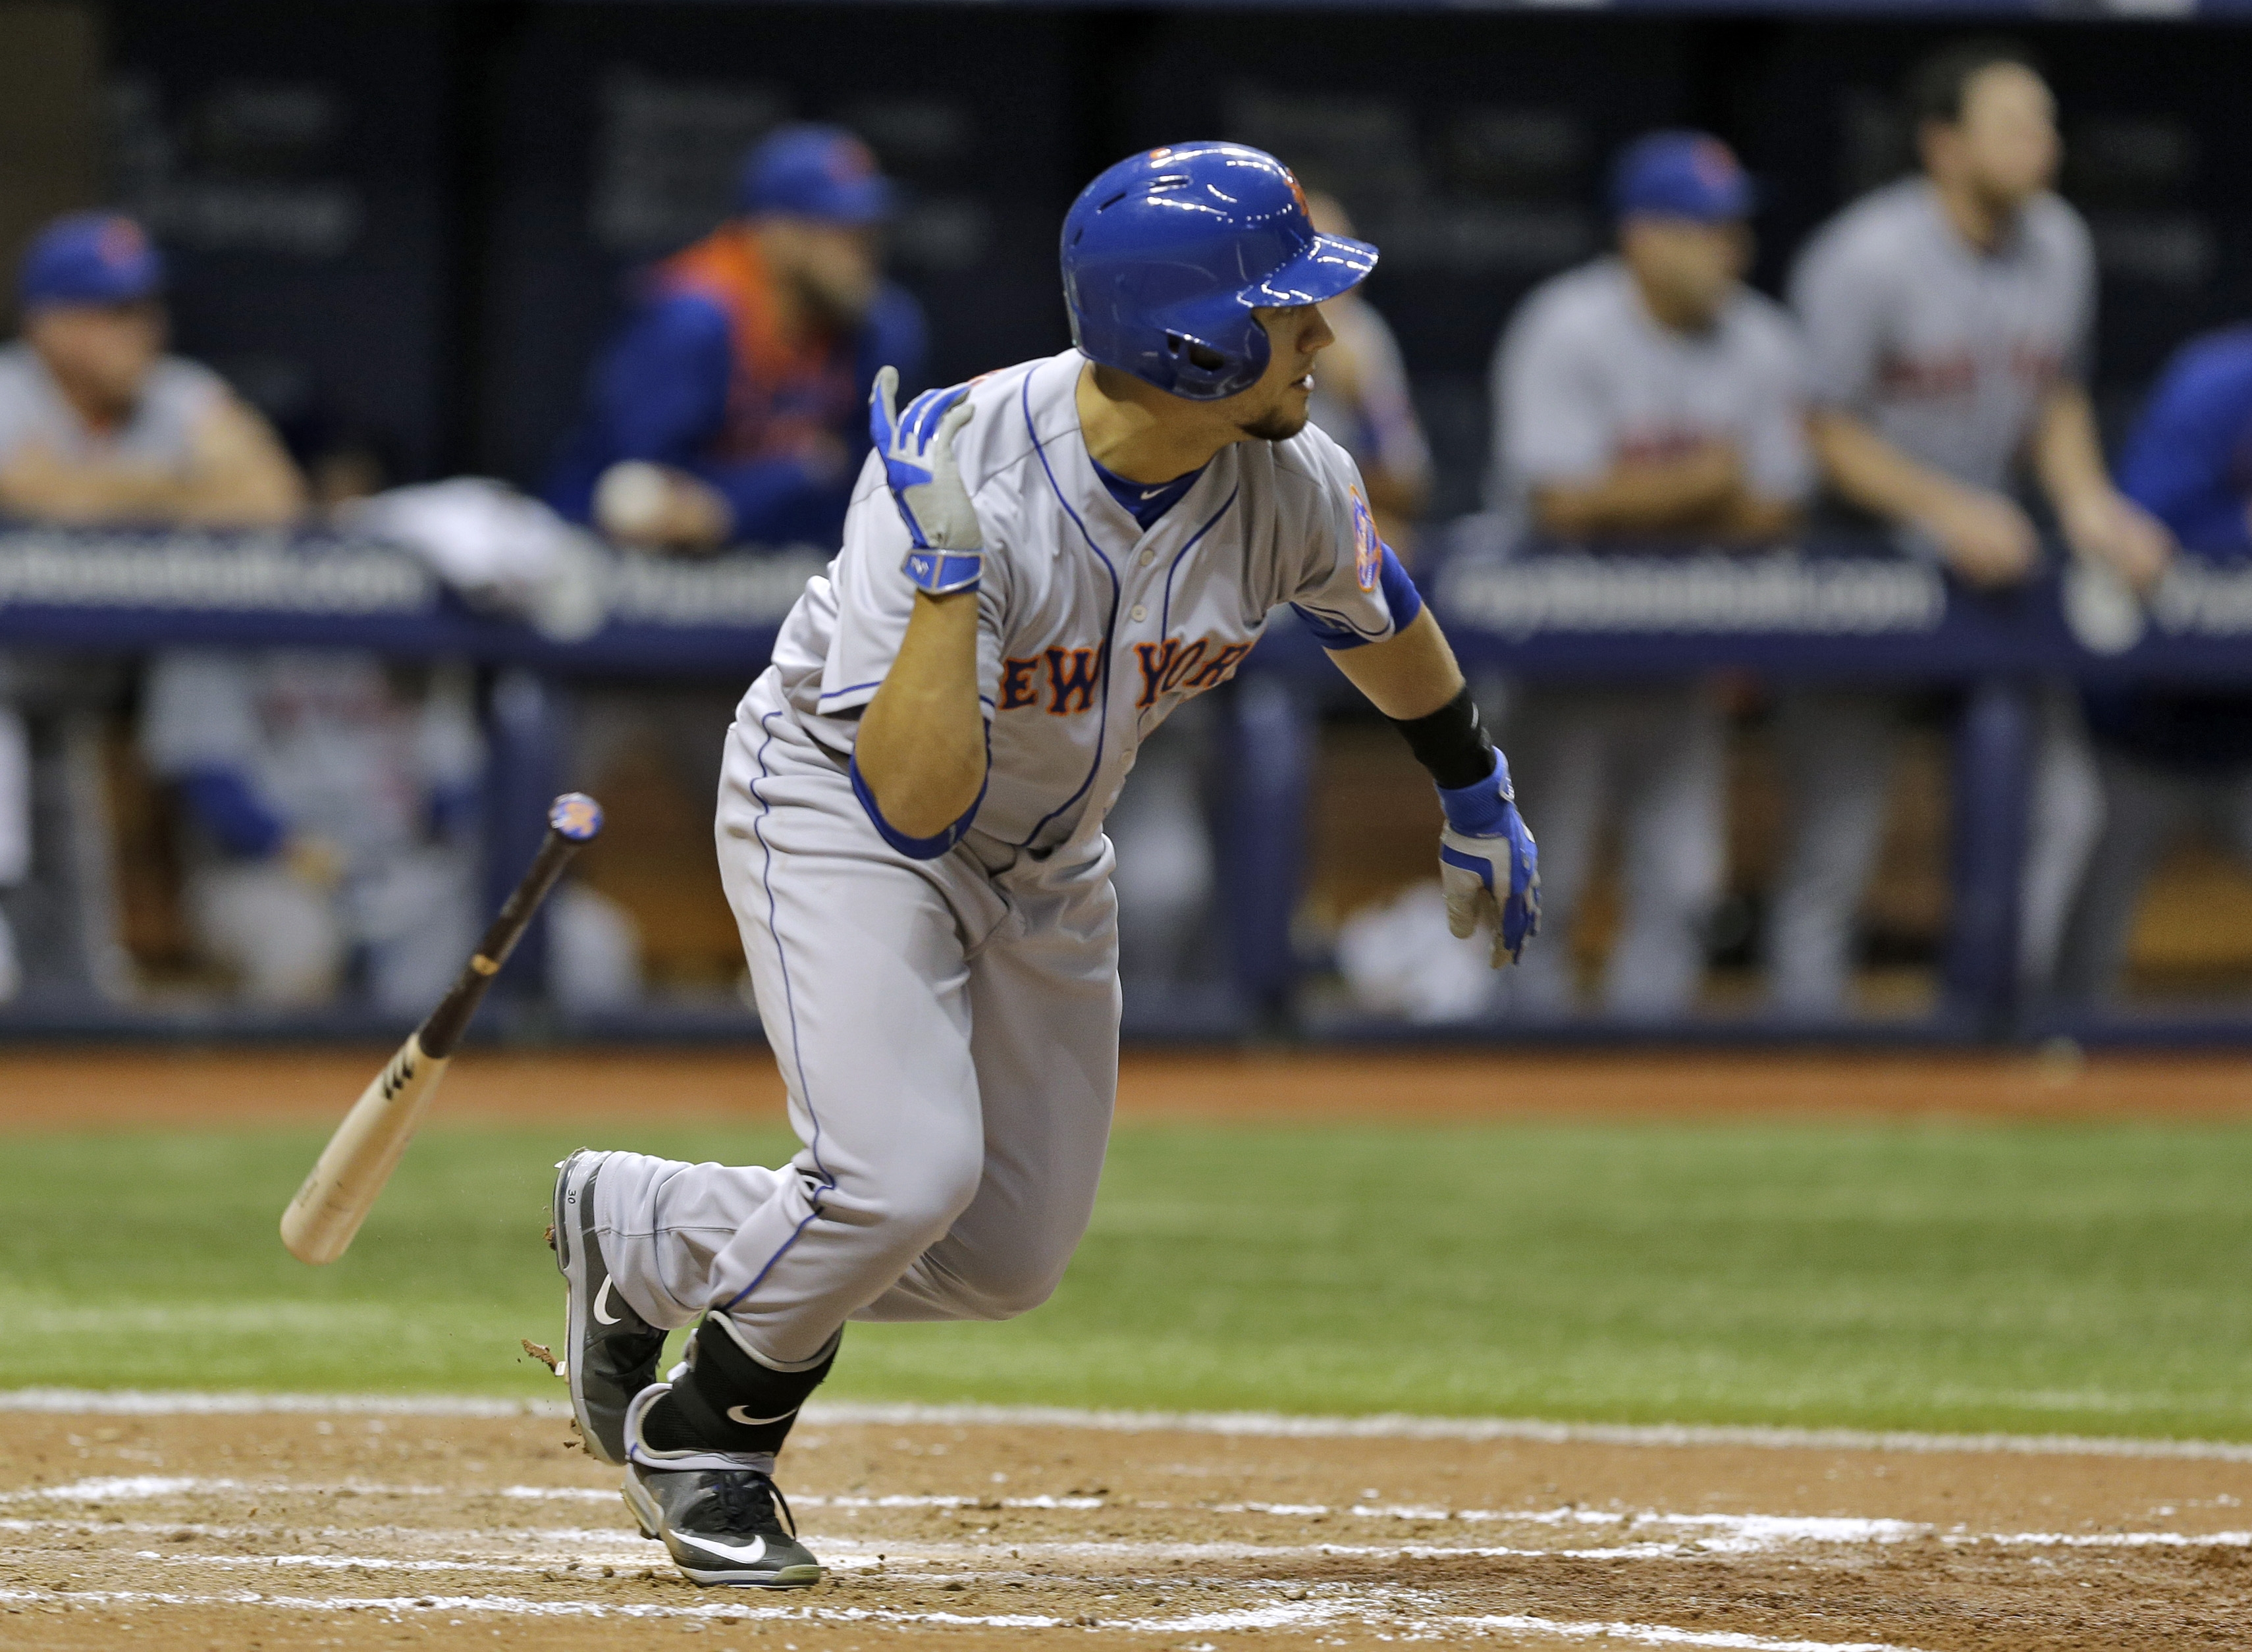 New York Mets' Michael Conforto hits an RBI-double off Tampa Bay Rays relief pitcher Brad Boxberger during the ninth inning of an interleague baseball game Friday, Aug. 7, 2015, in St. Petersburg, Fla. Mets' Lucas Duda scored on the hit. (AP Photo/Chris O